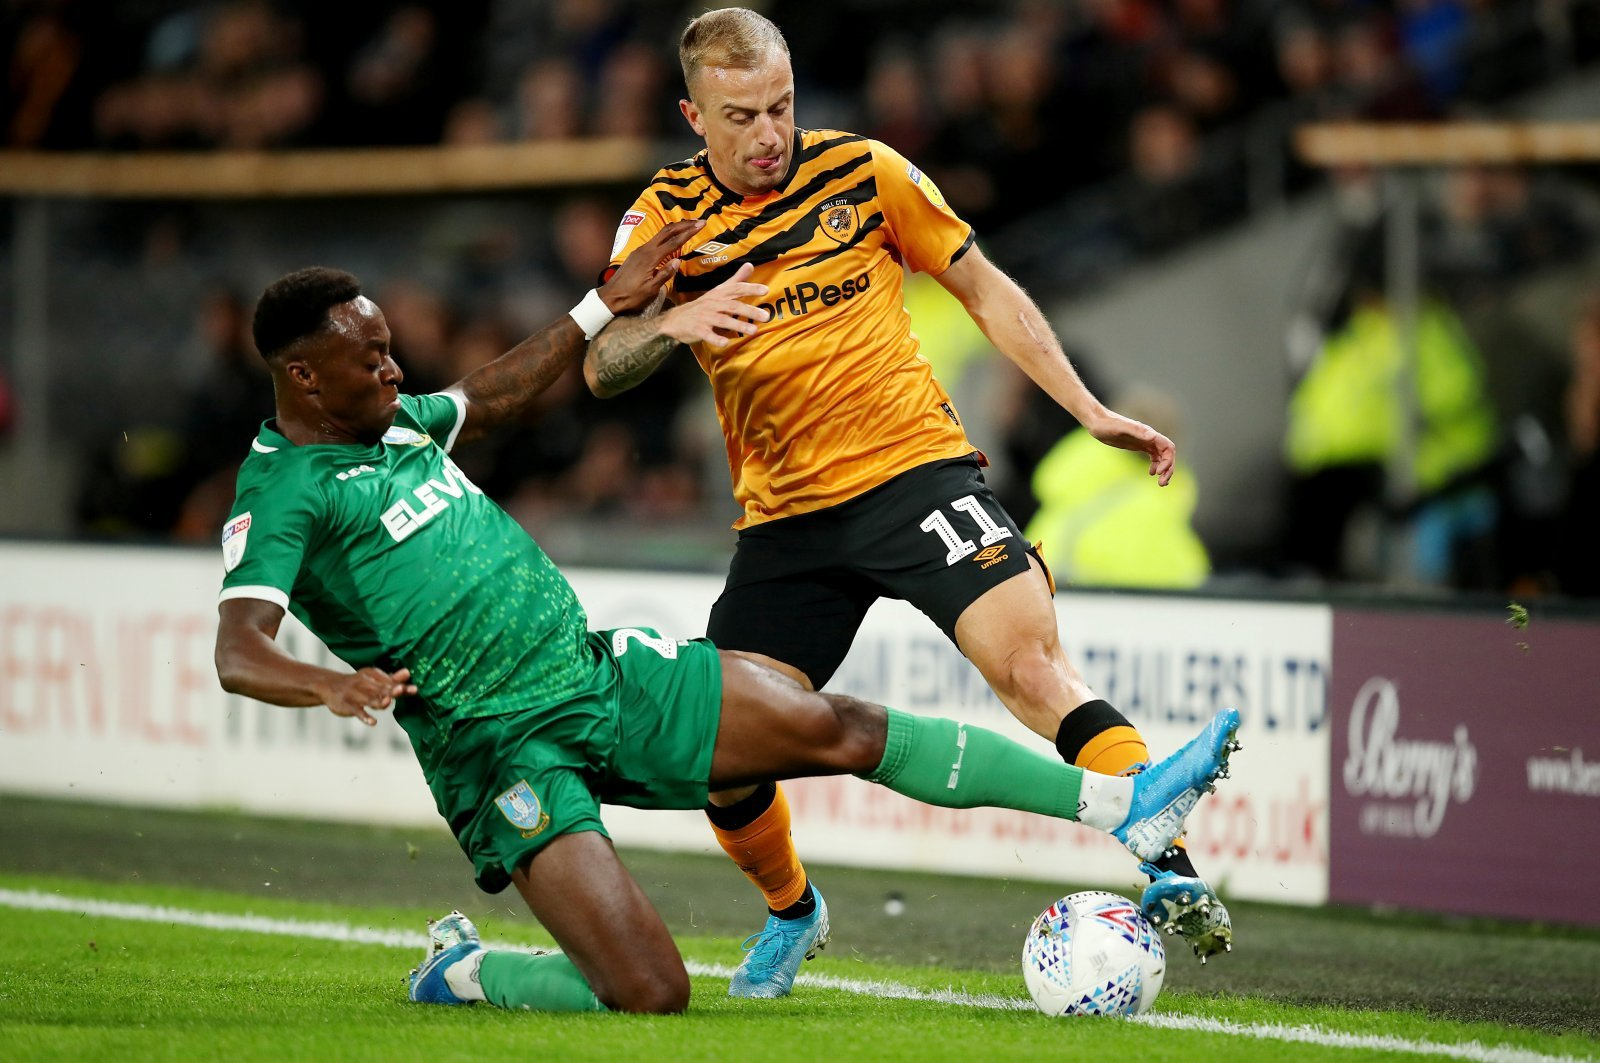 Sheffield Wednesday: Fans unimpressed by Moses Odubajo in Hull City loss